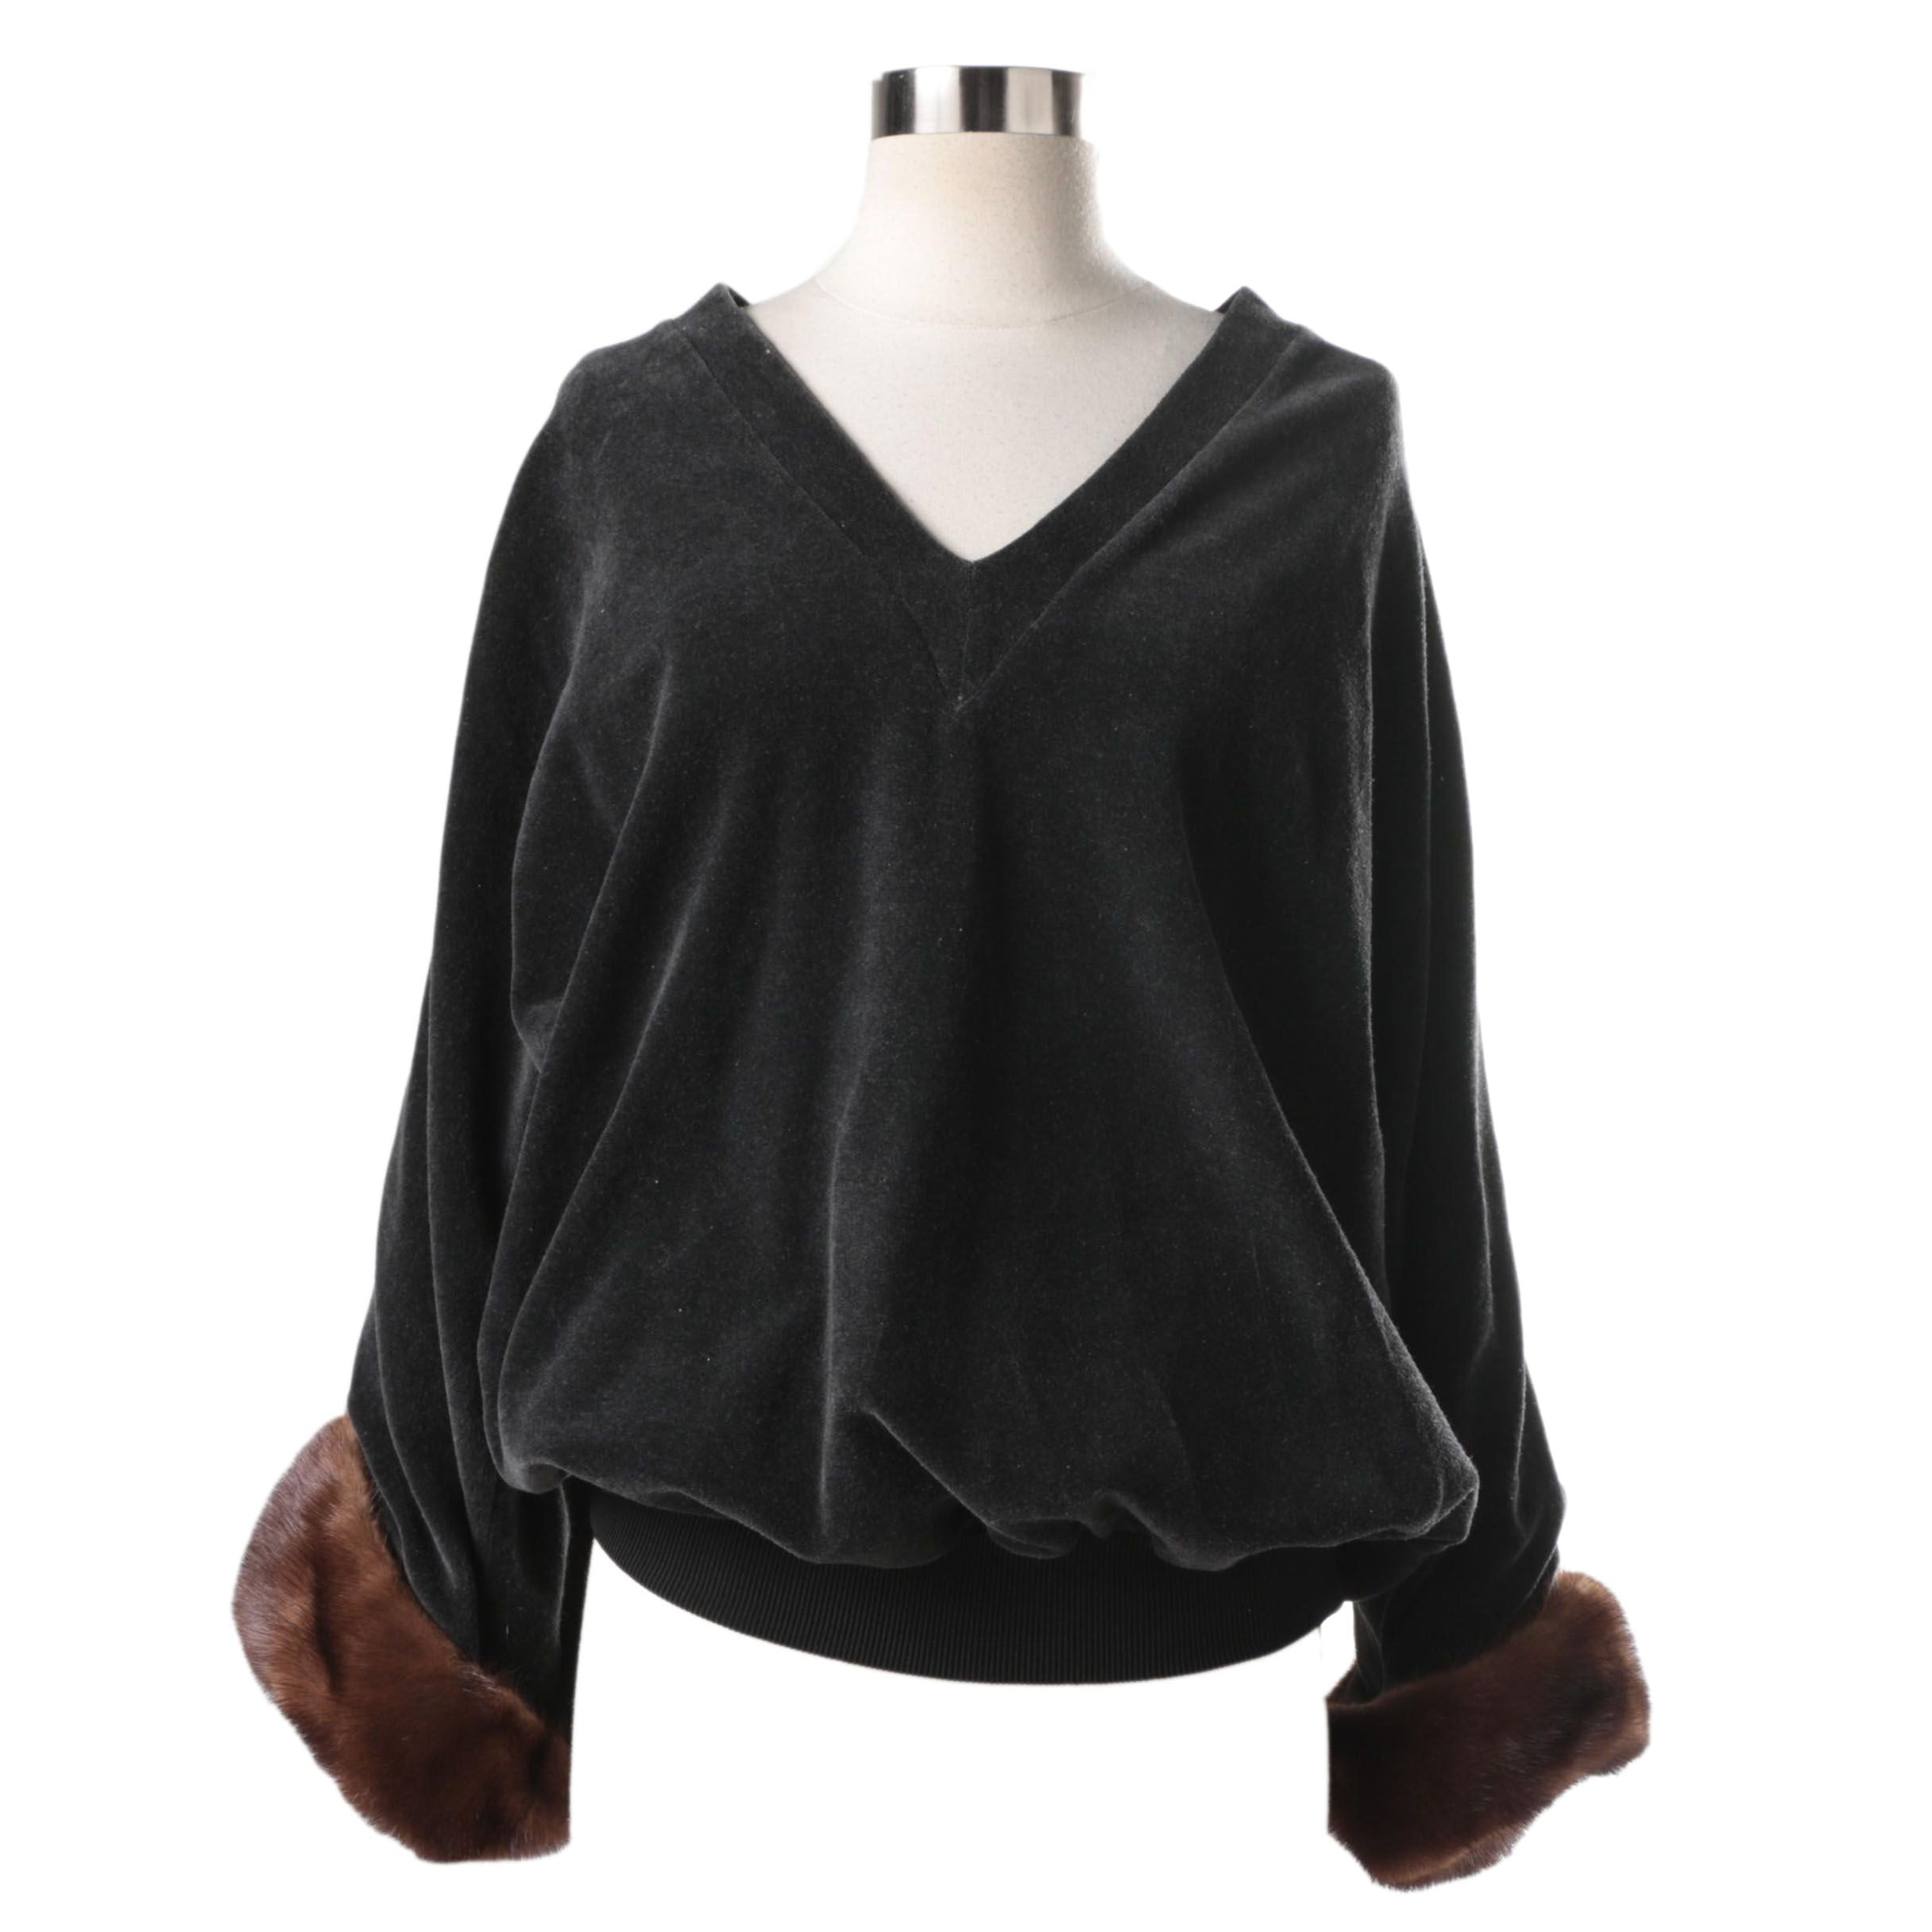 Gianfranco Ferre Velour Sweater with Mink Cuffs